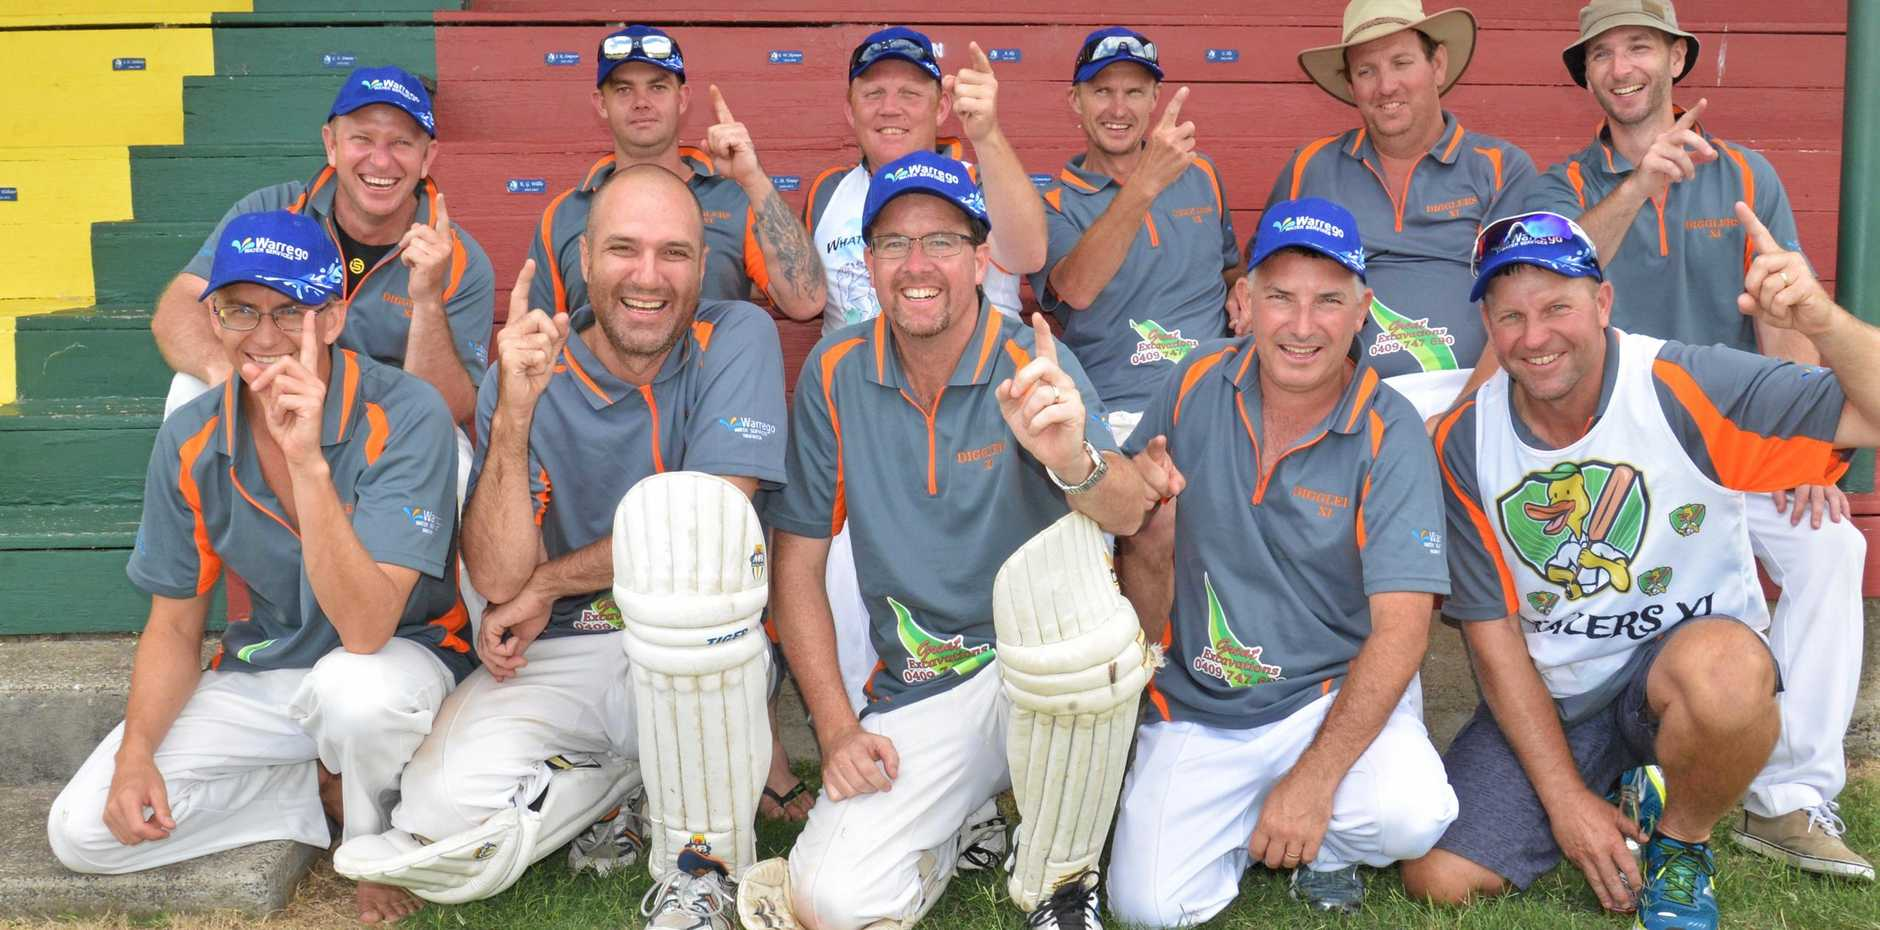 SOCIAL WINNERS: Digglers (back, from left) Mark Grayson, Dion Galloway, Mark Gillespie, Maurice Monckton, Andrew Boal, Adam Fowler, (front) Ken Gee, Steve Gander, Darren Costello, Brad Ready and Mark Fischer after a win in their 20th carnival appearance last season. They are one of nine social teams in this month's carnival.